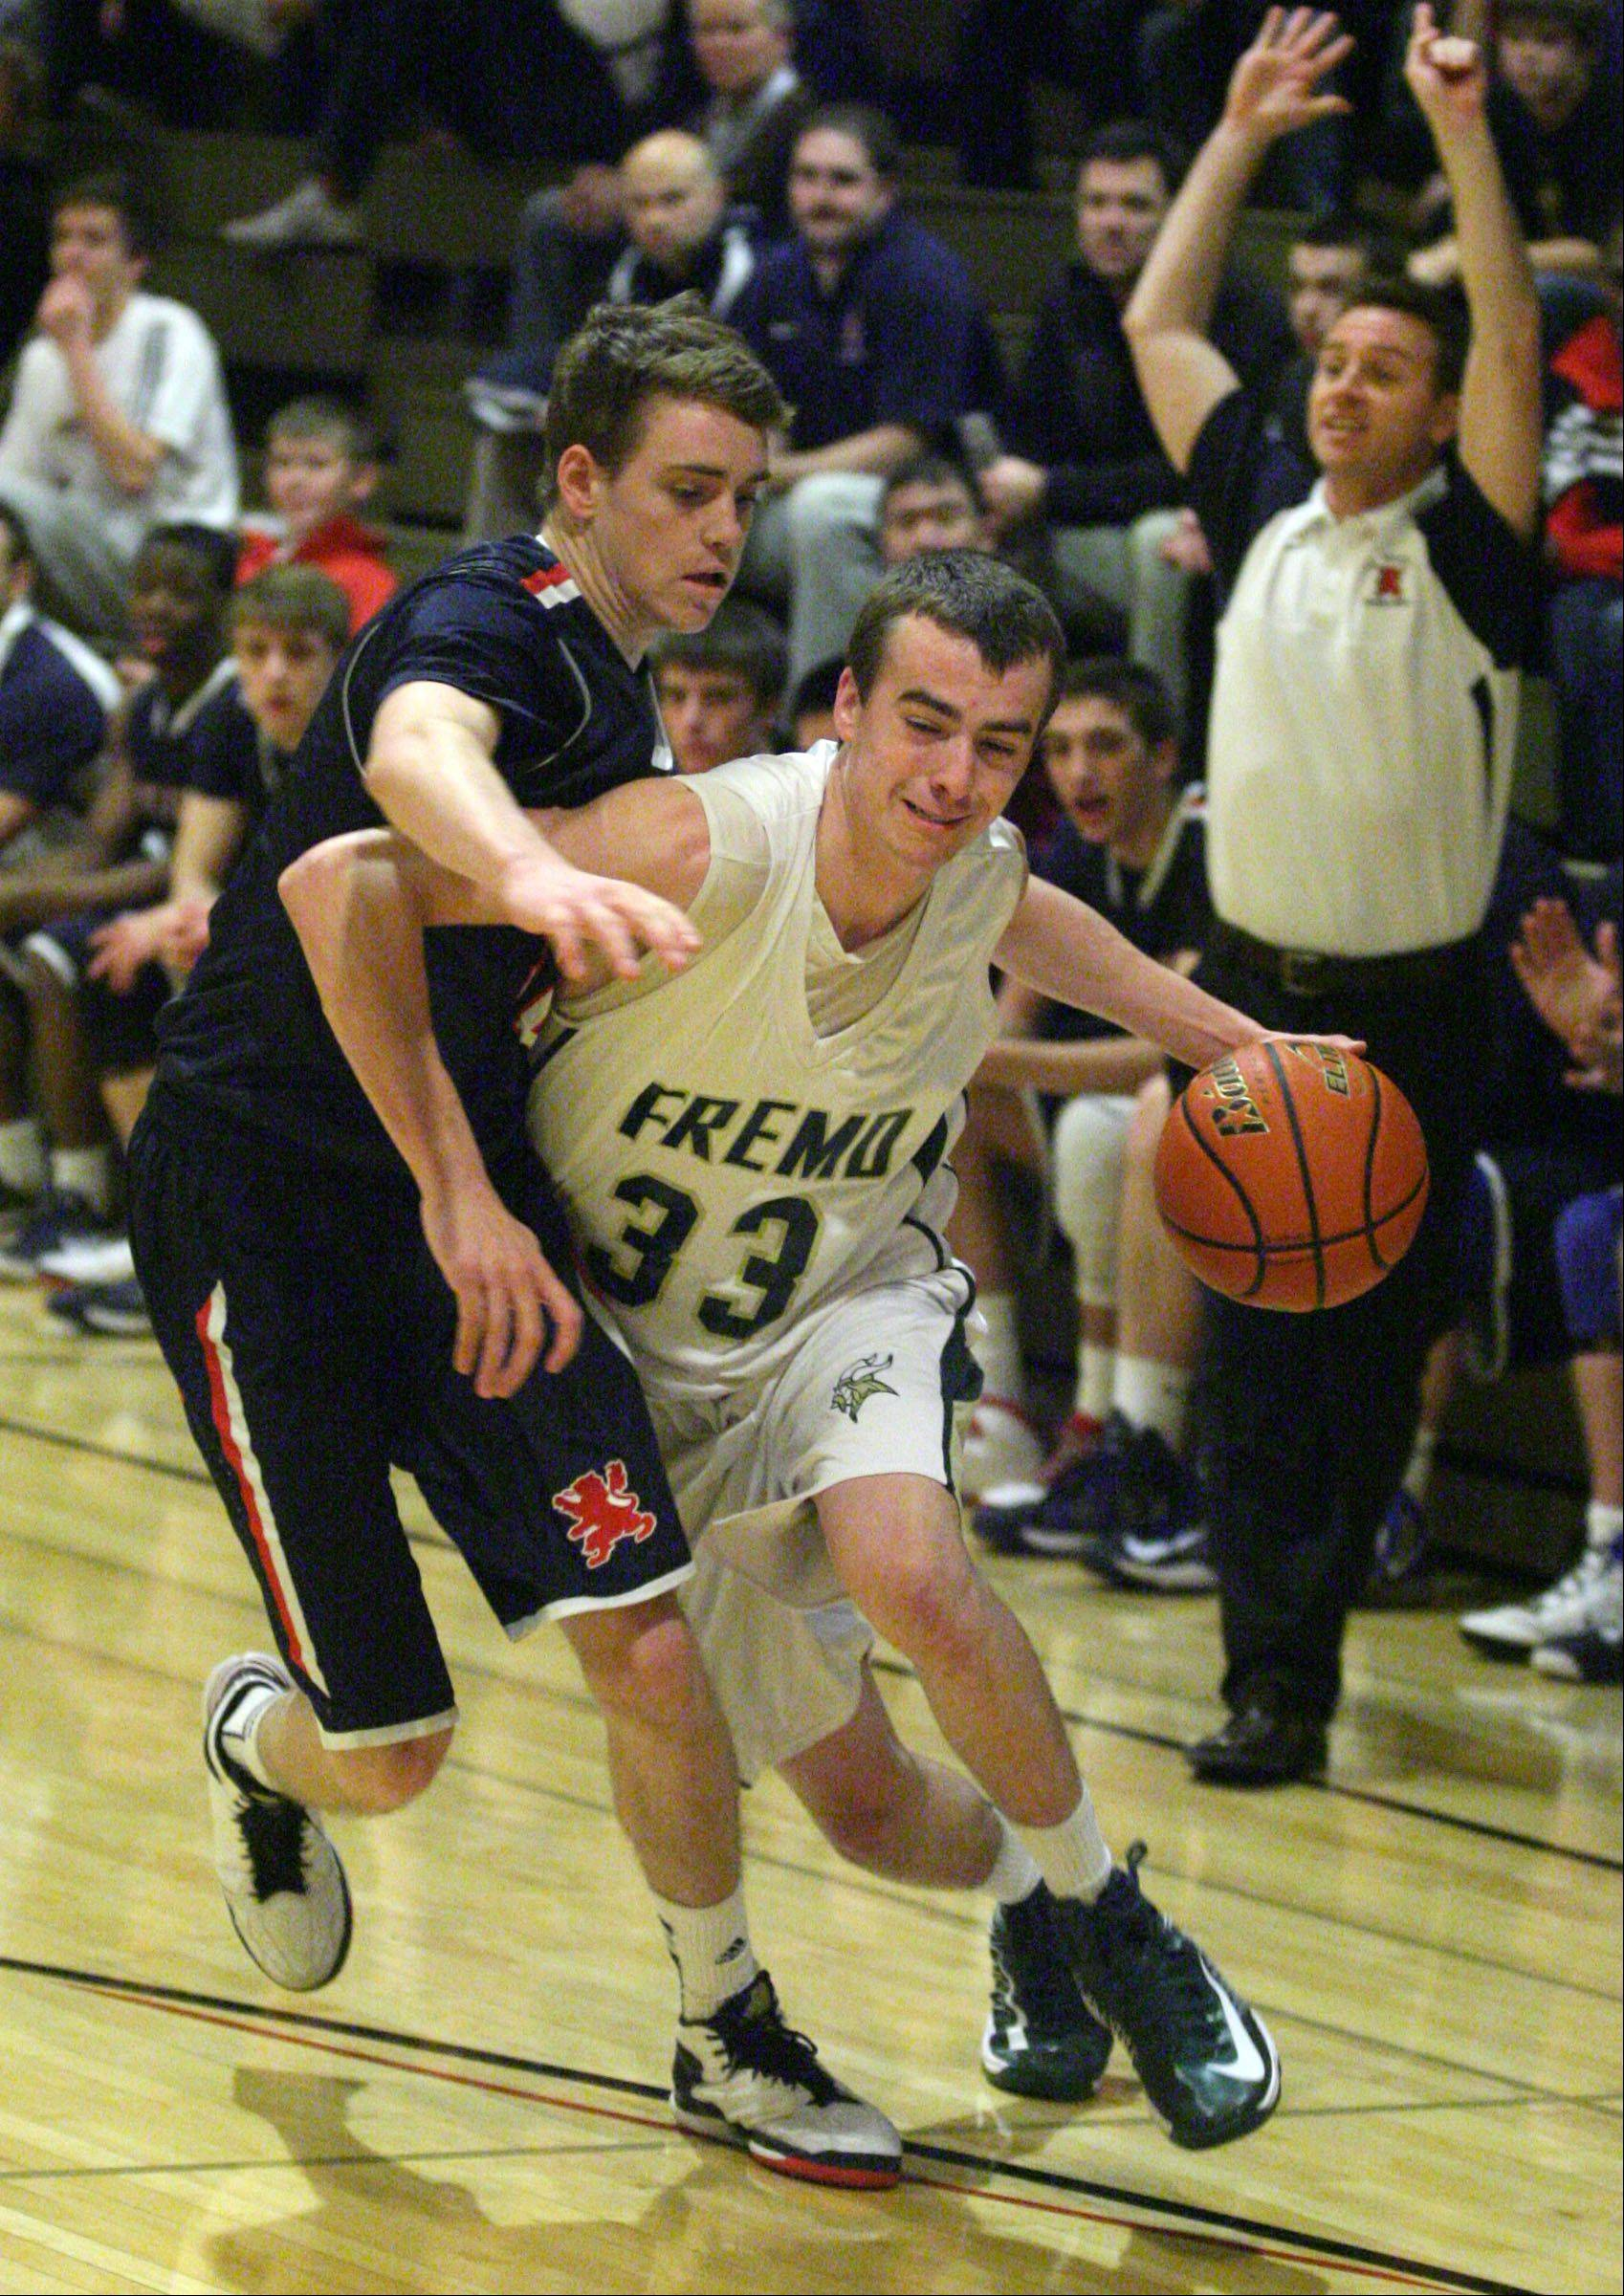 Images from the Fremd vs. St. Viator boys basketball game on Thursday, December 27th, at the Wheeling High School holiday basketball tournament.